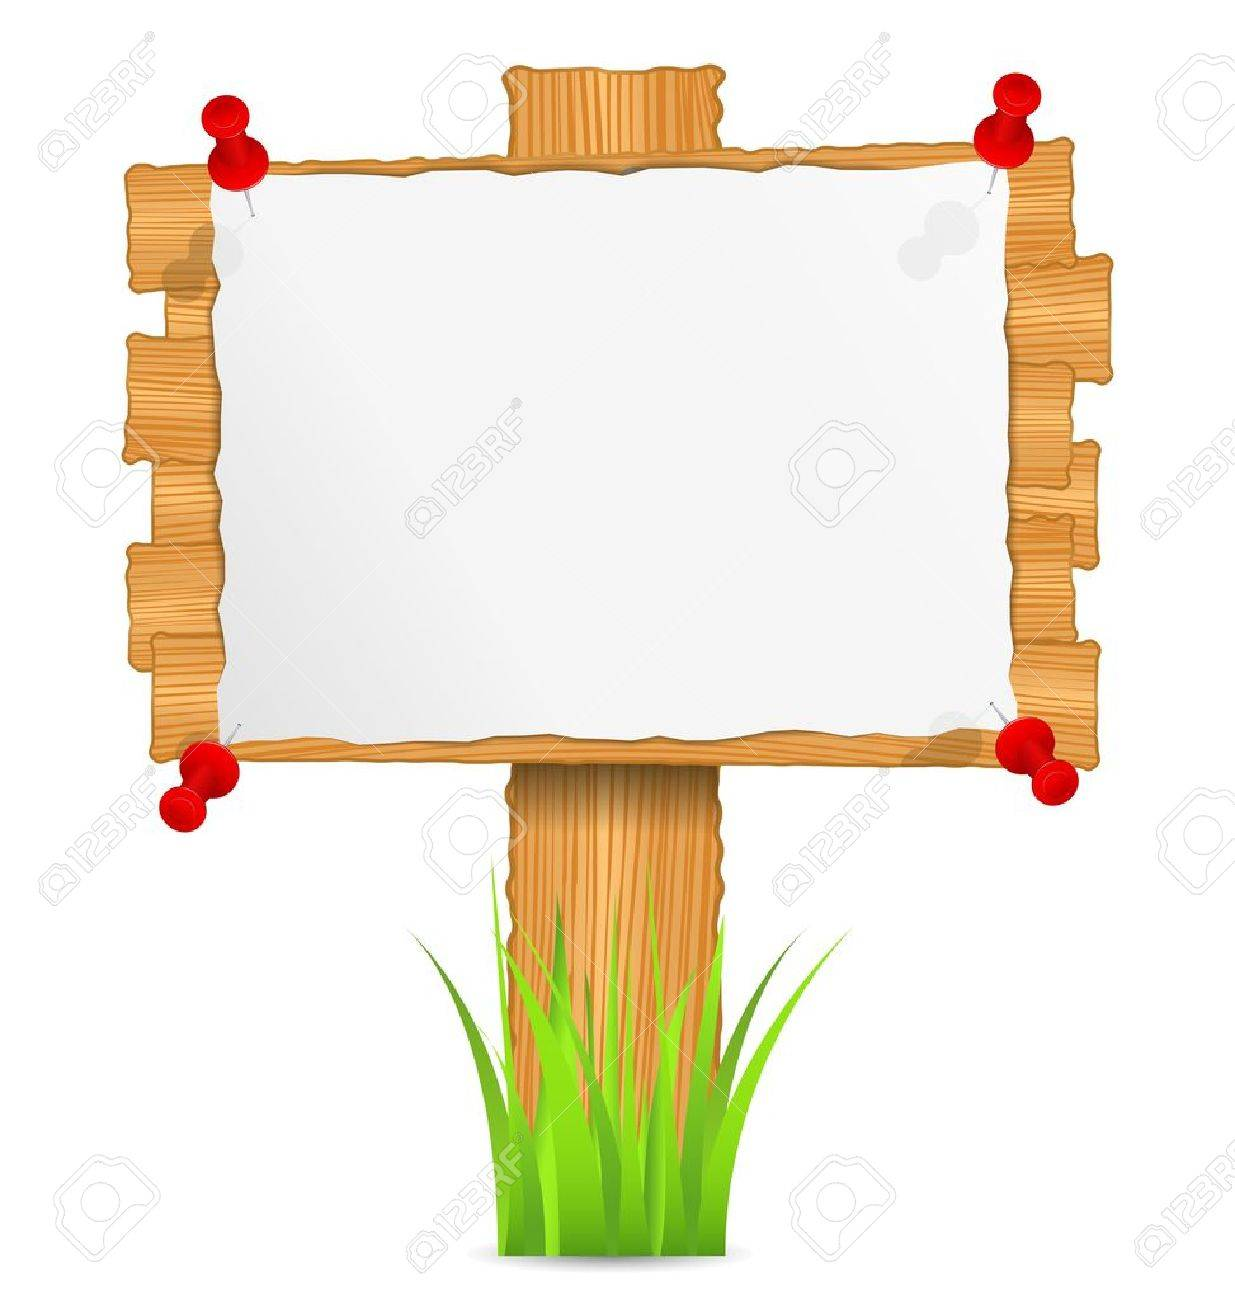 Wooden board with attached paper - 12841477